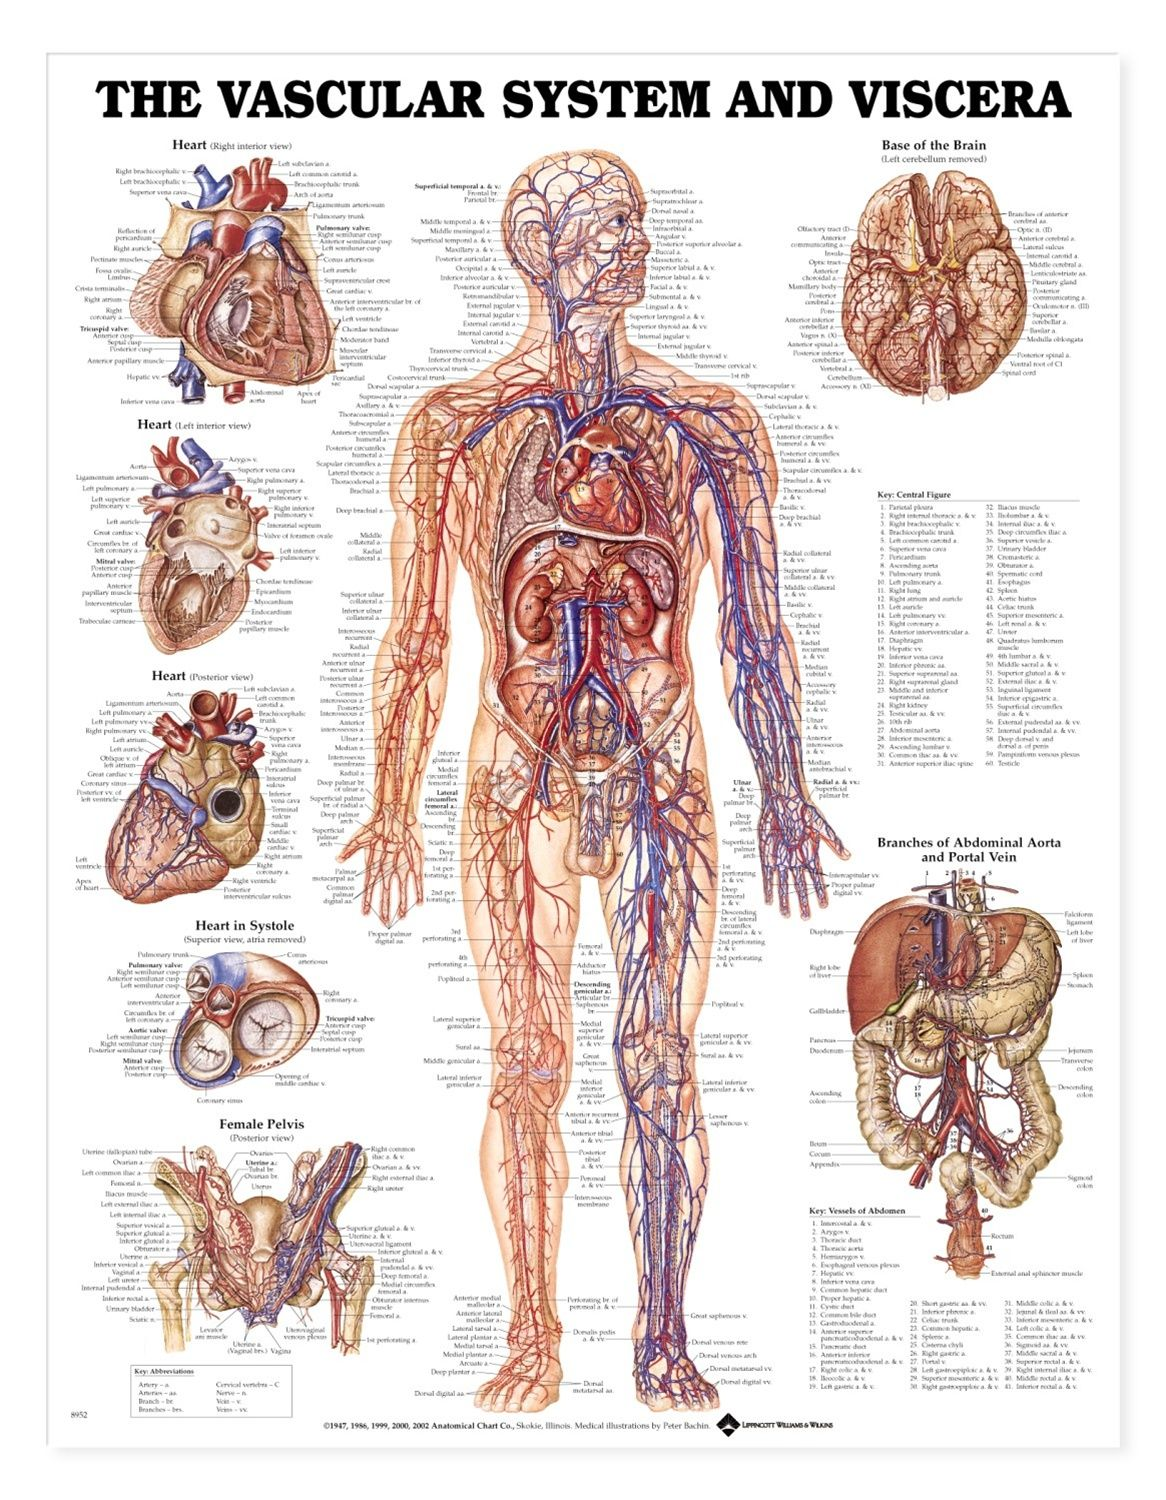 Vascular system and viscera poster styrene plastic chart and anatomy